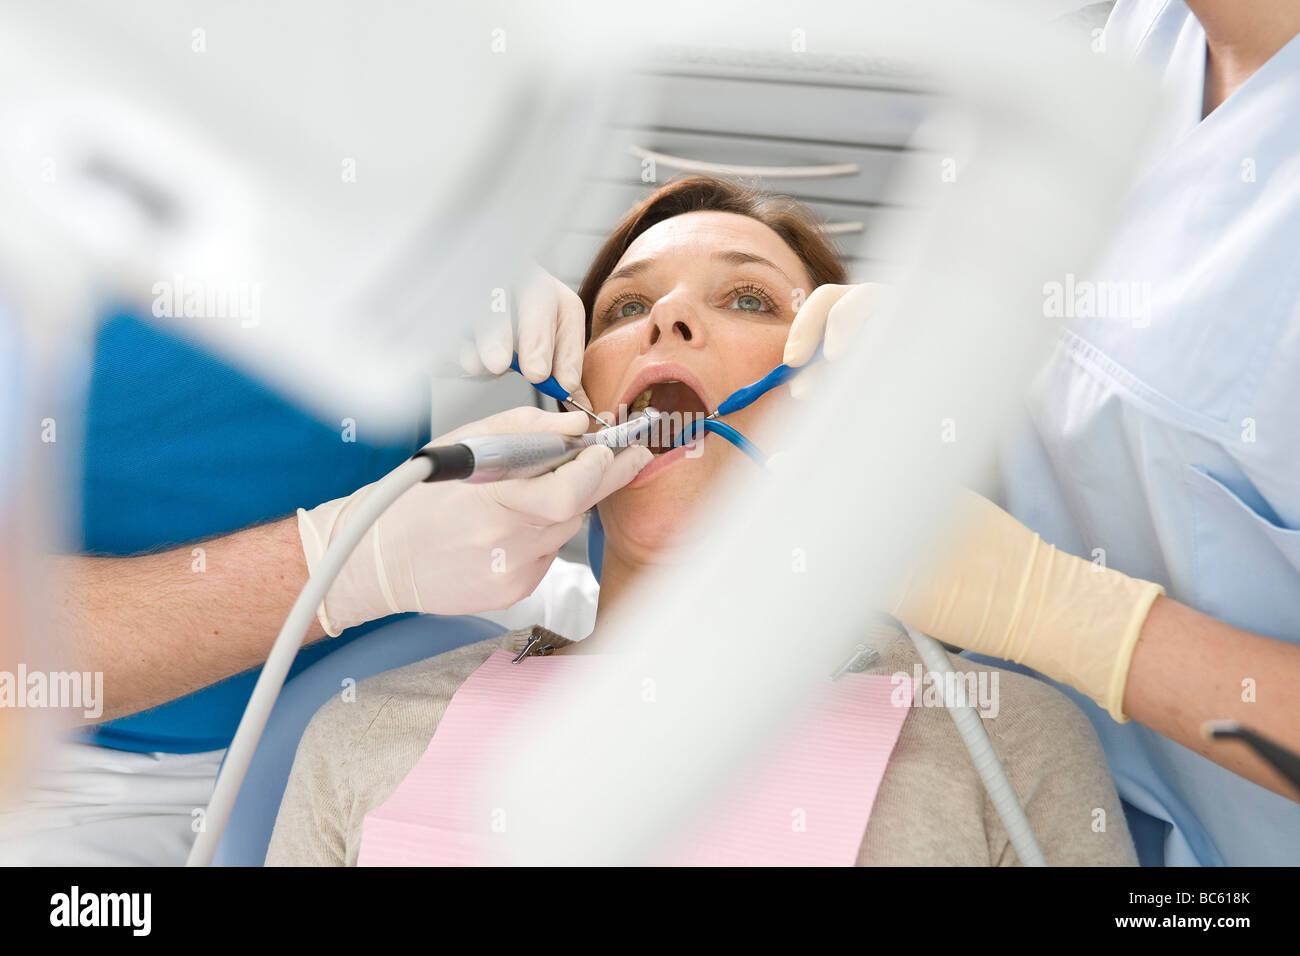 Male dentist and assistant examining patient's teeth - Stock Image